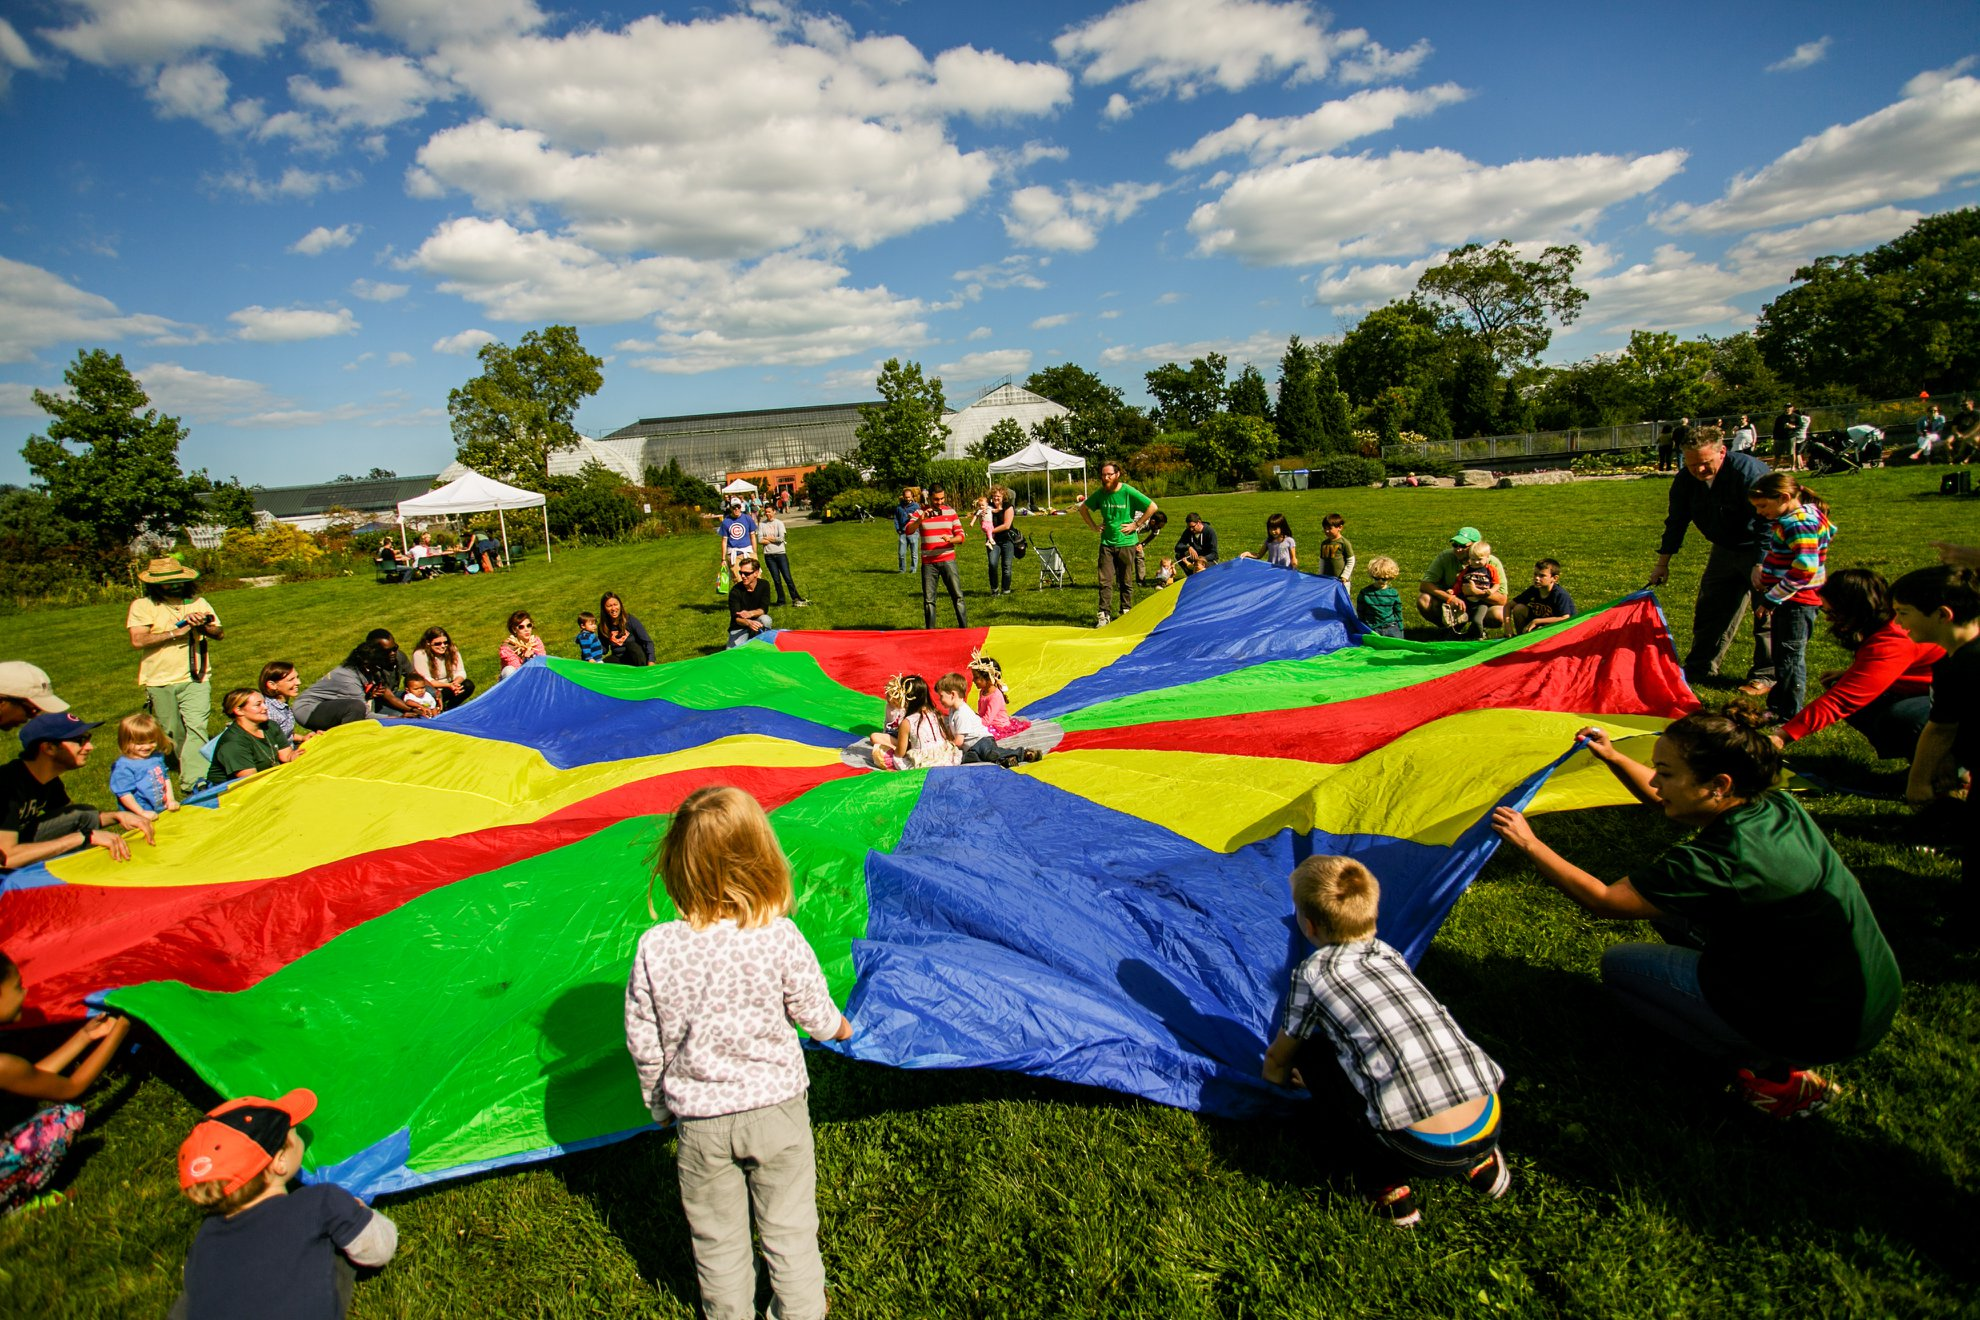 Children play with a parachute at the 2017 Harvest Day  Photo By: Courtesy of Garfield Park Conservatory